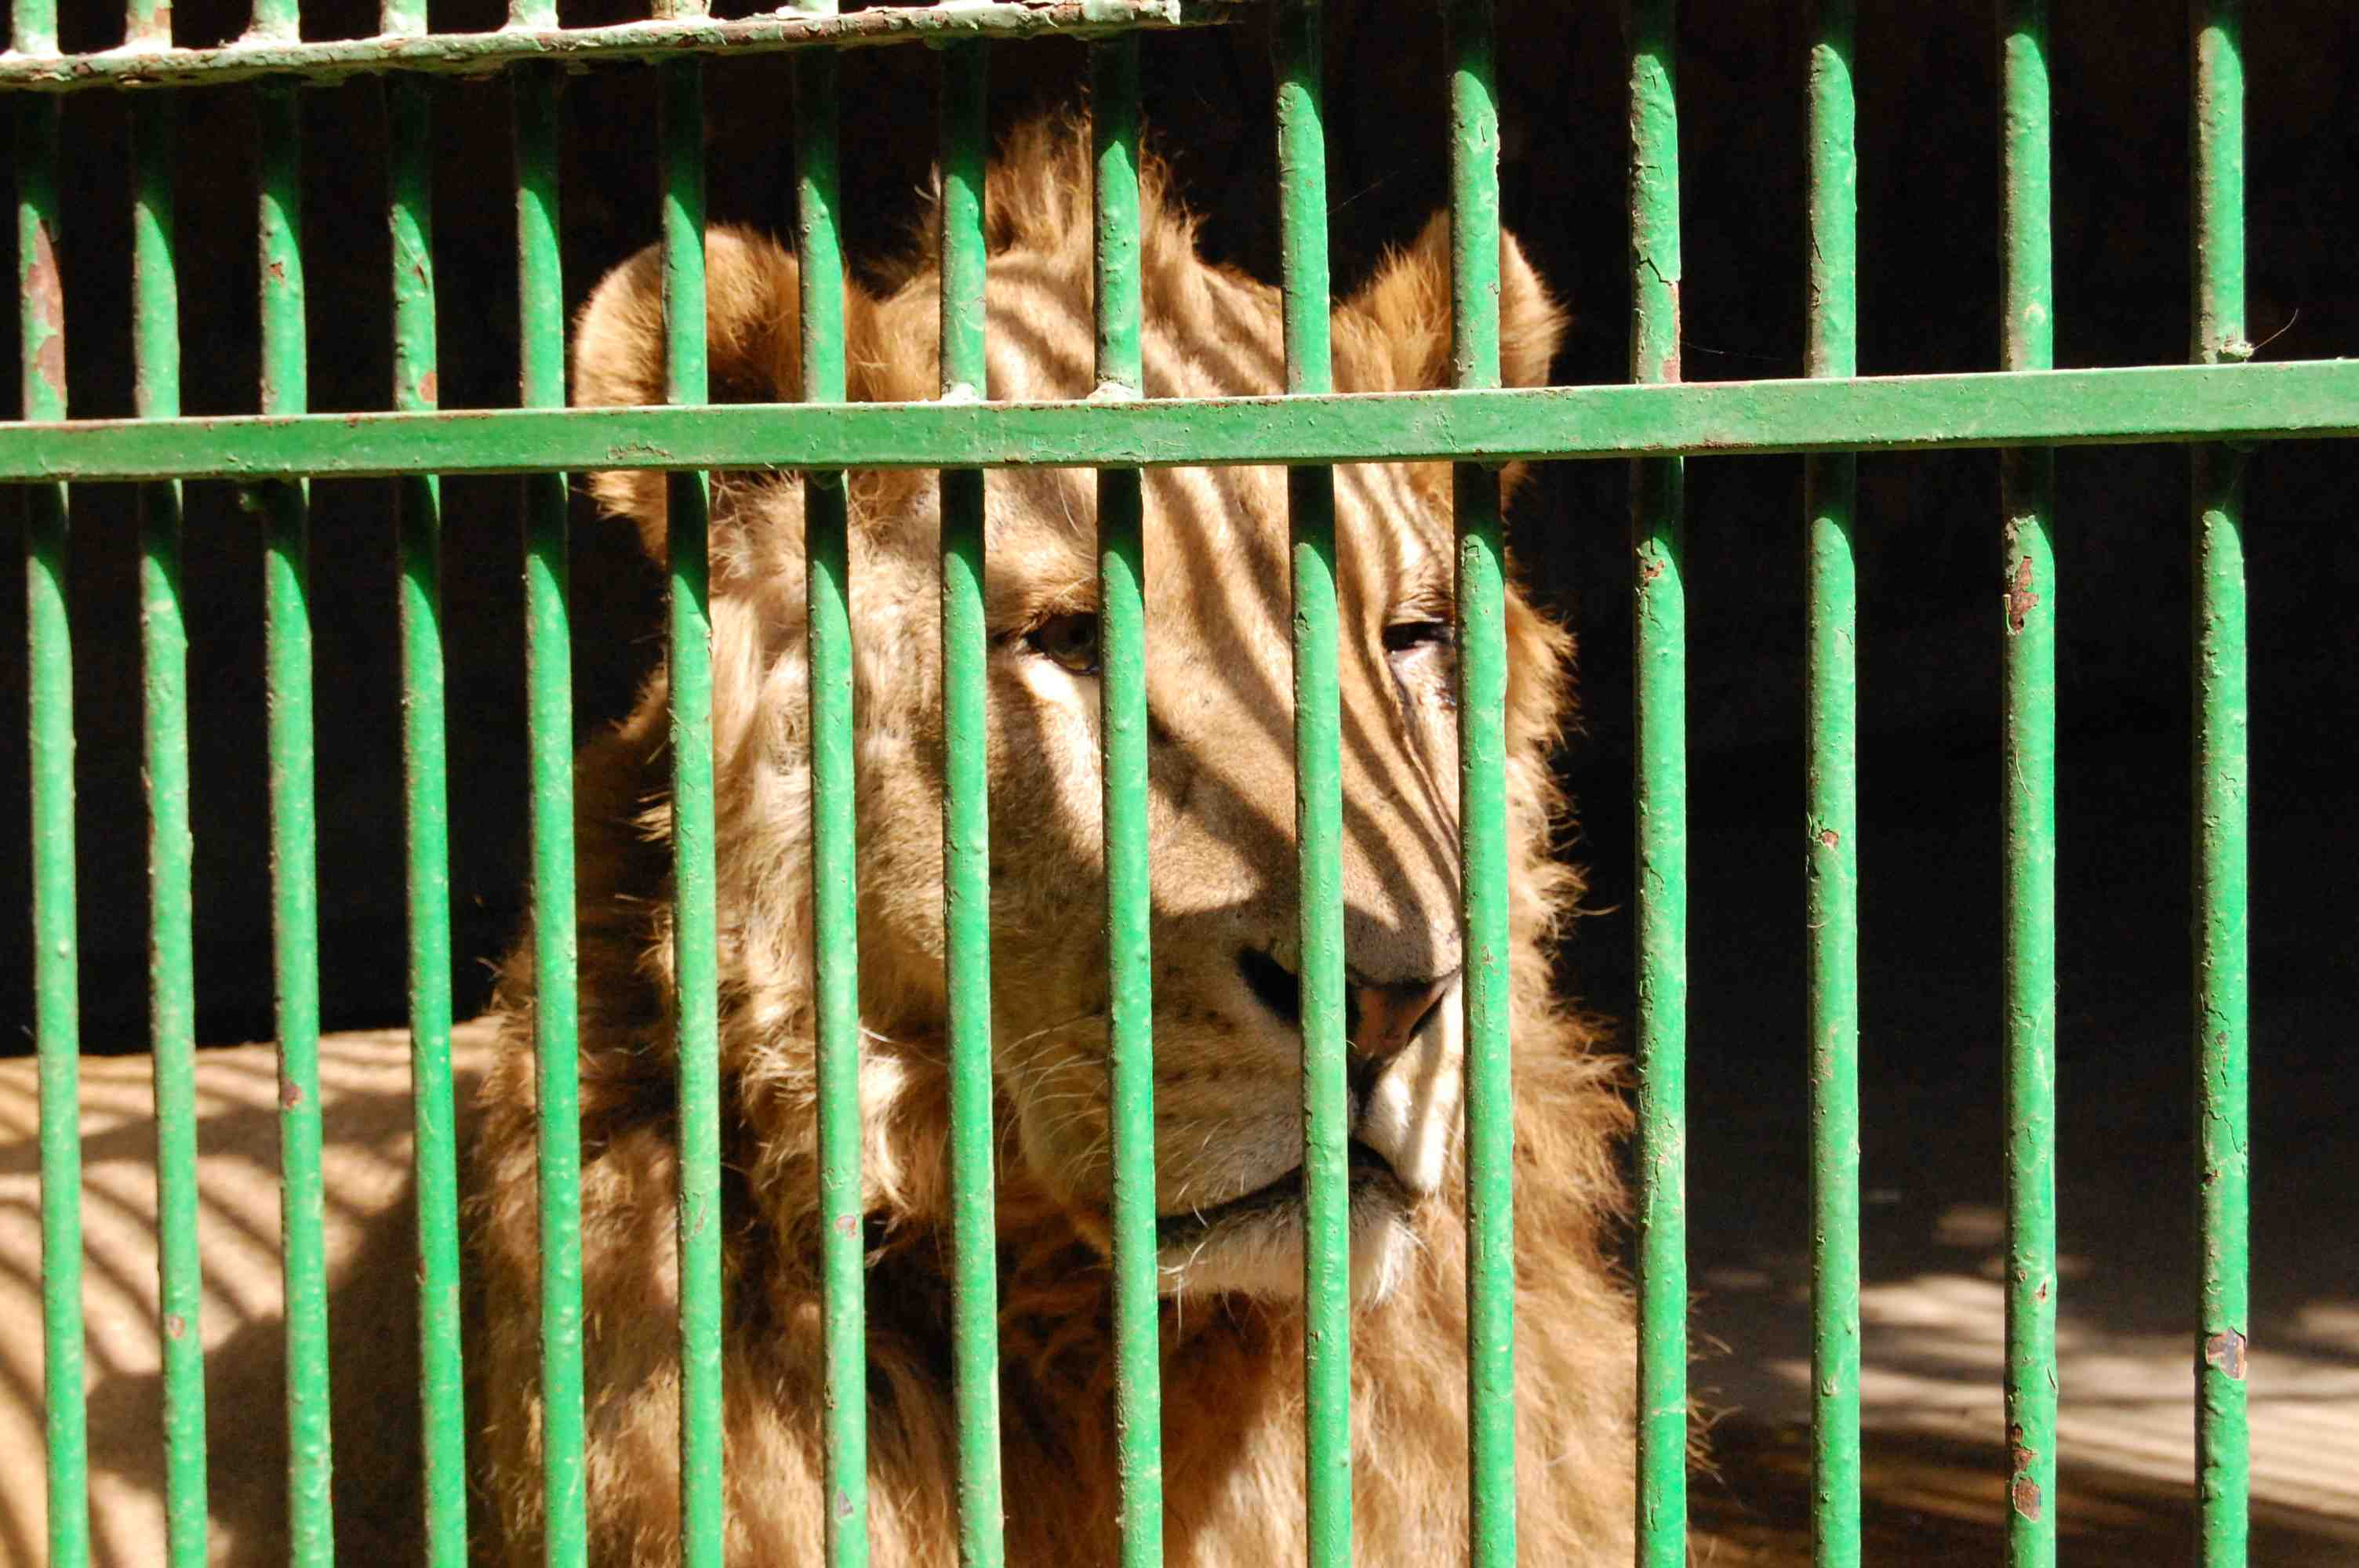 Corruption is Alive and Well at Egyptian Zoo